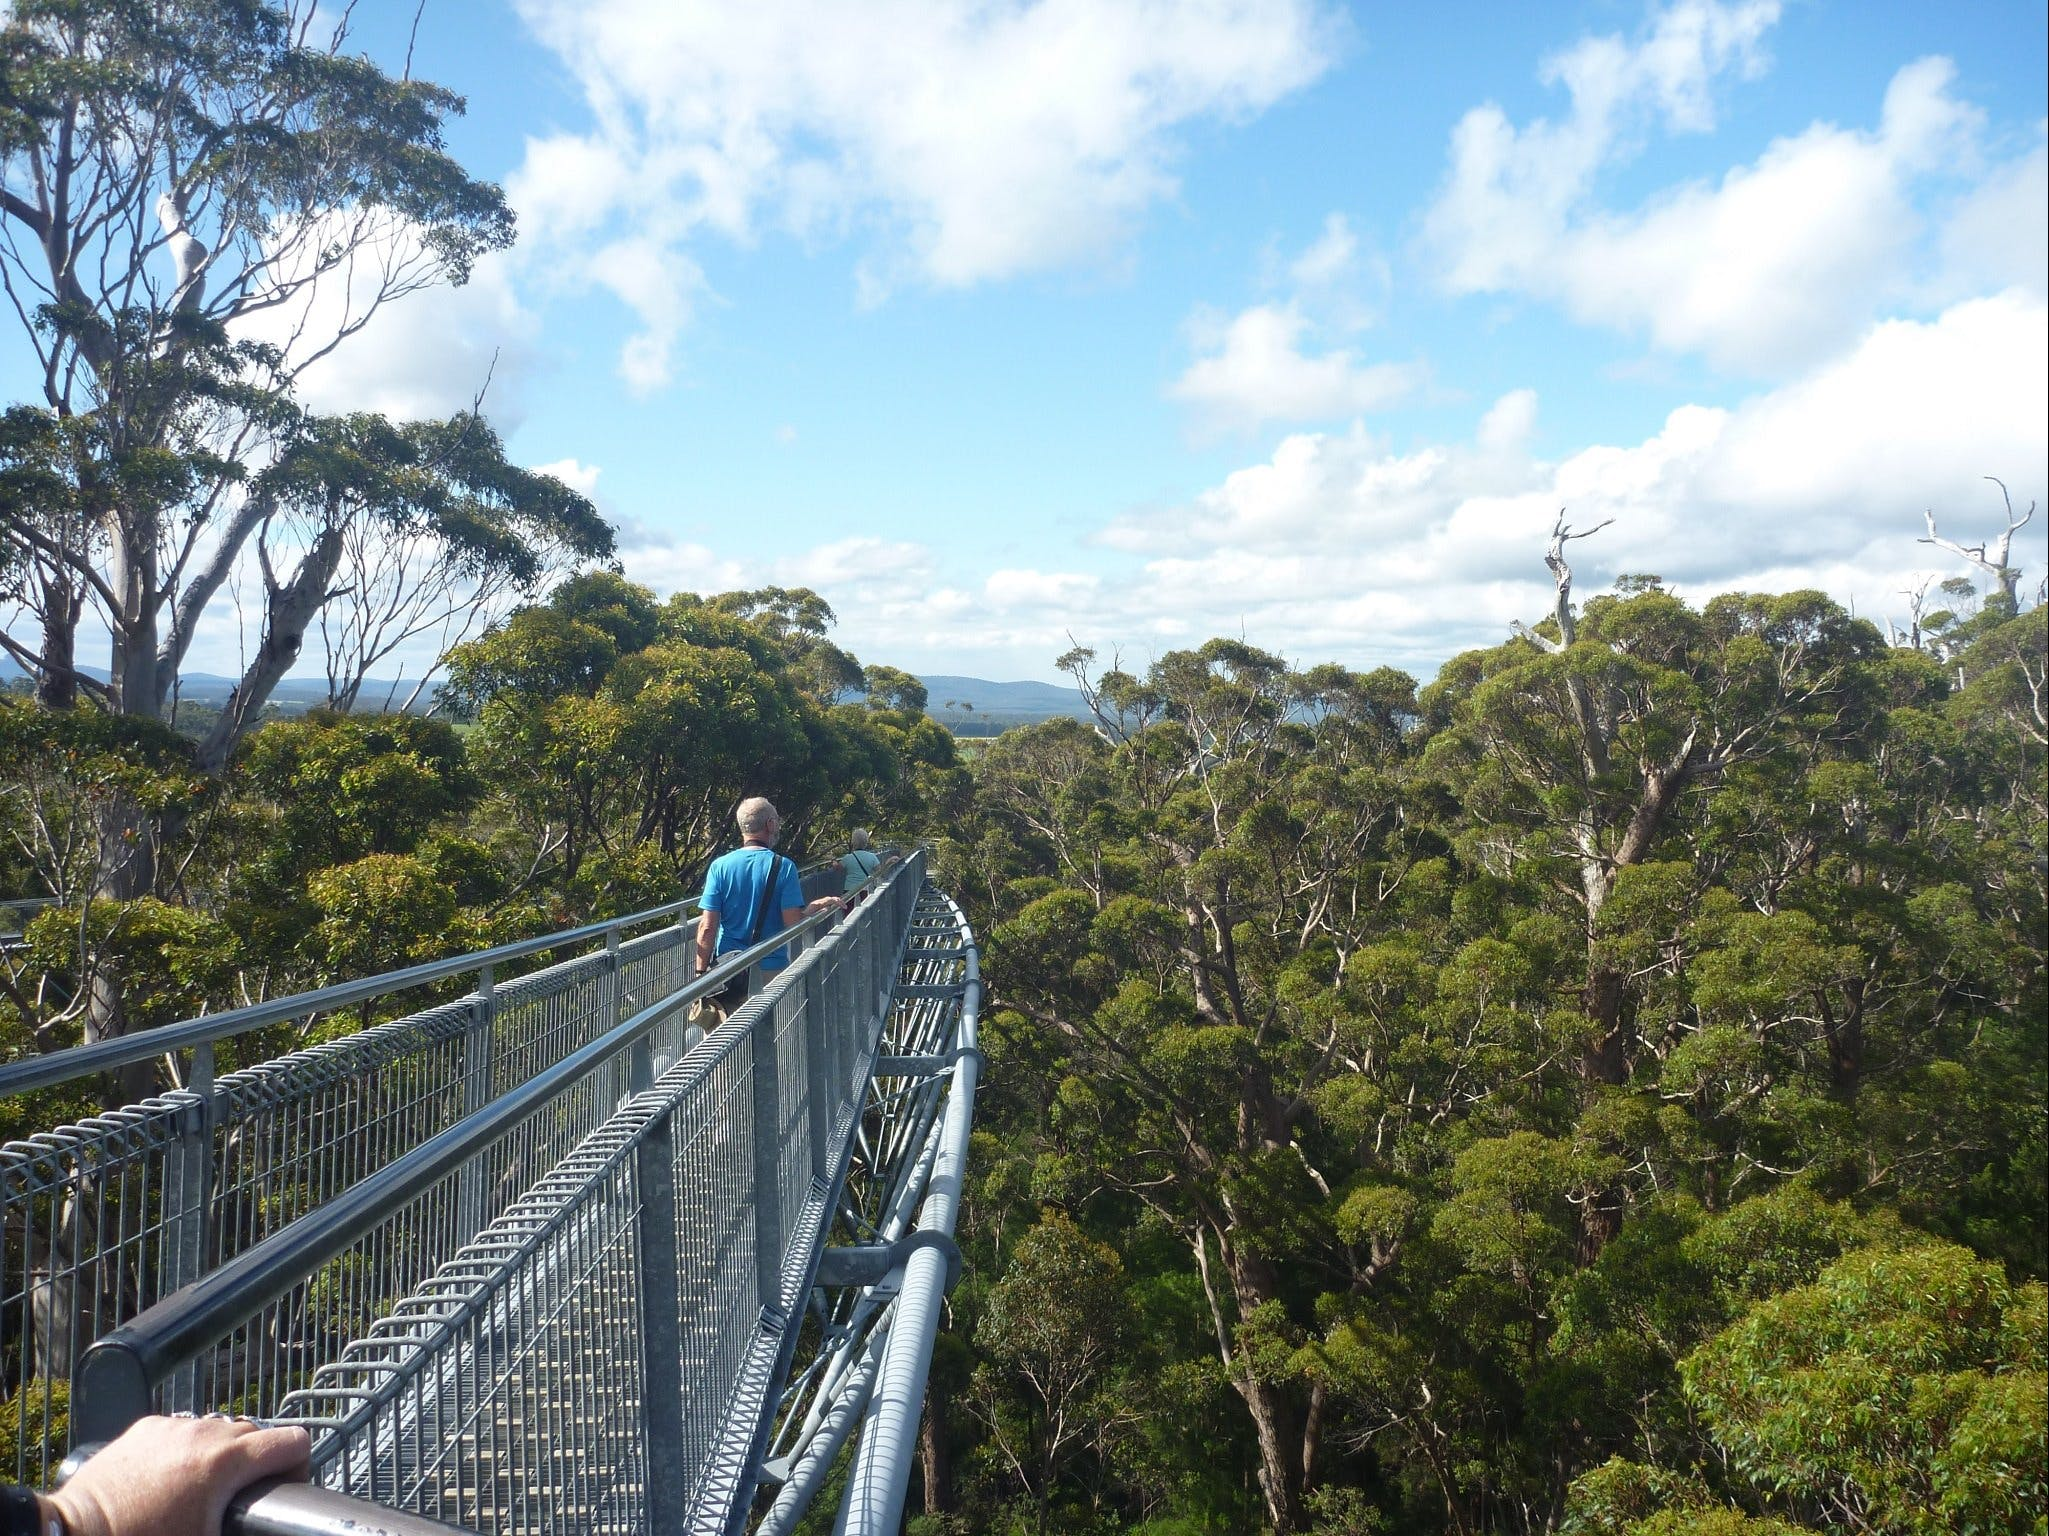 Walpole-Nornalup National Park - Attractions